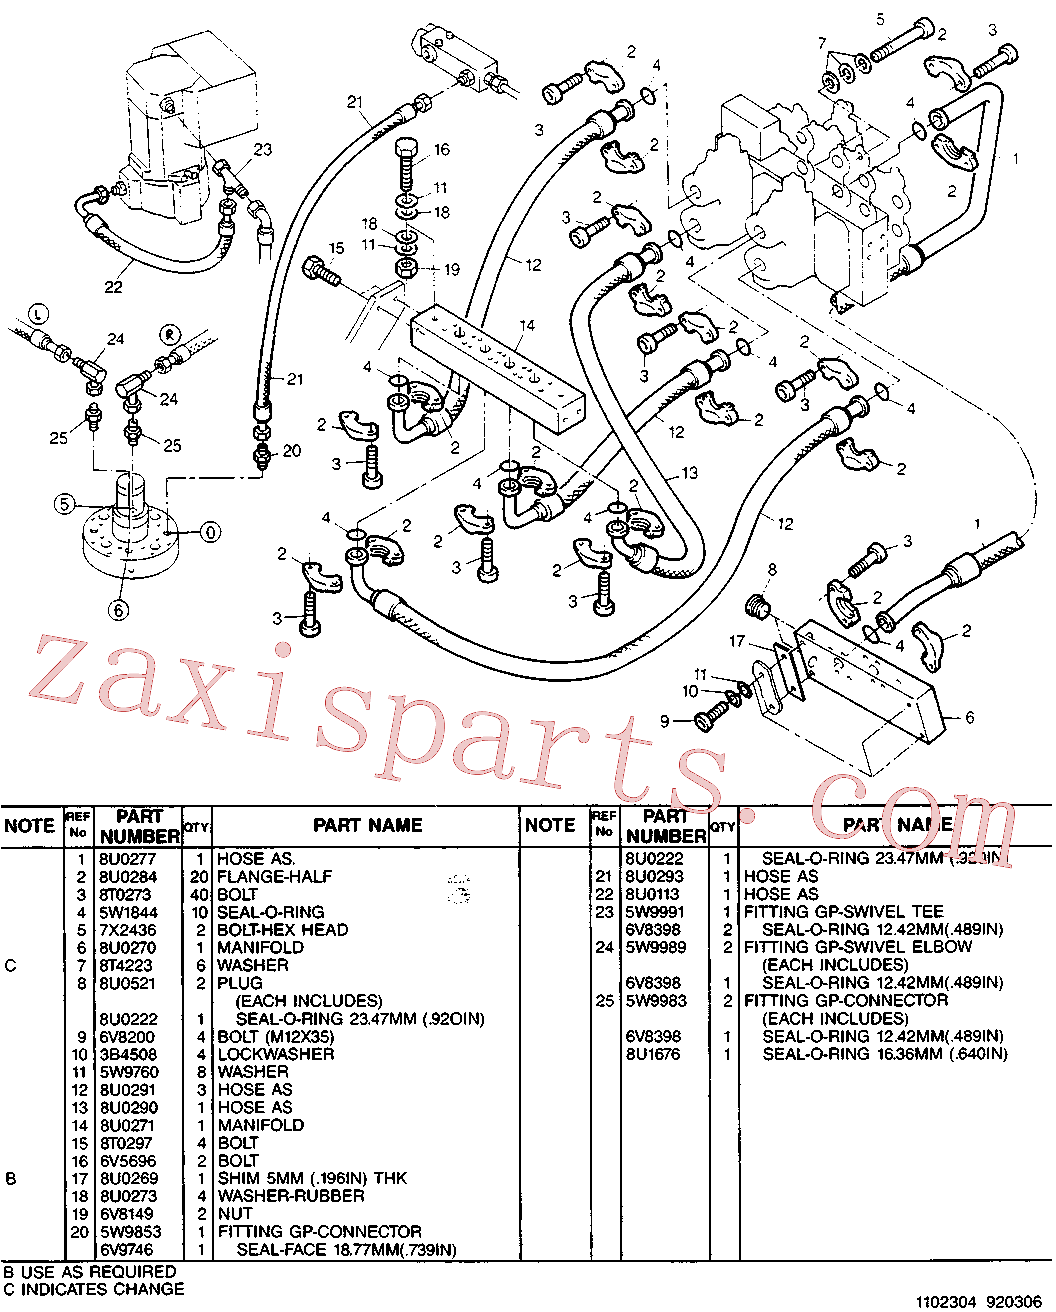 CAT 8U-1939 for 213B Excavator(EXC) hydraulic system 5W-9801 Assembly